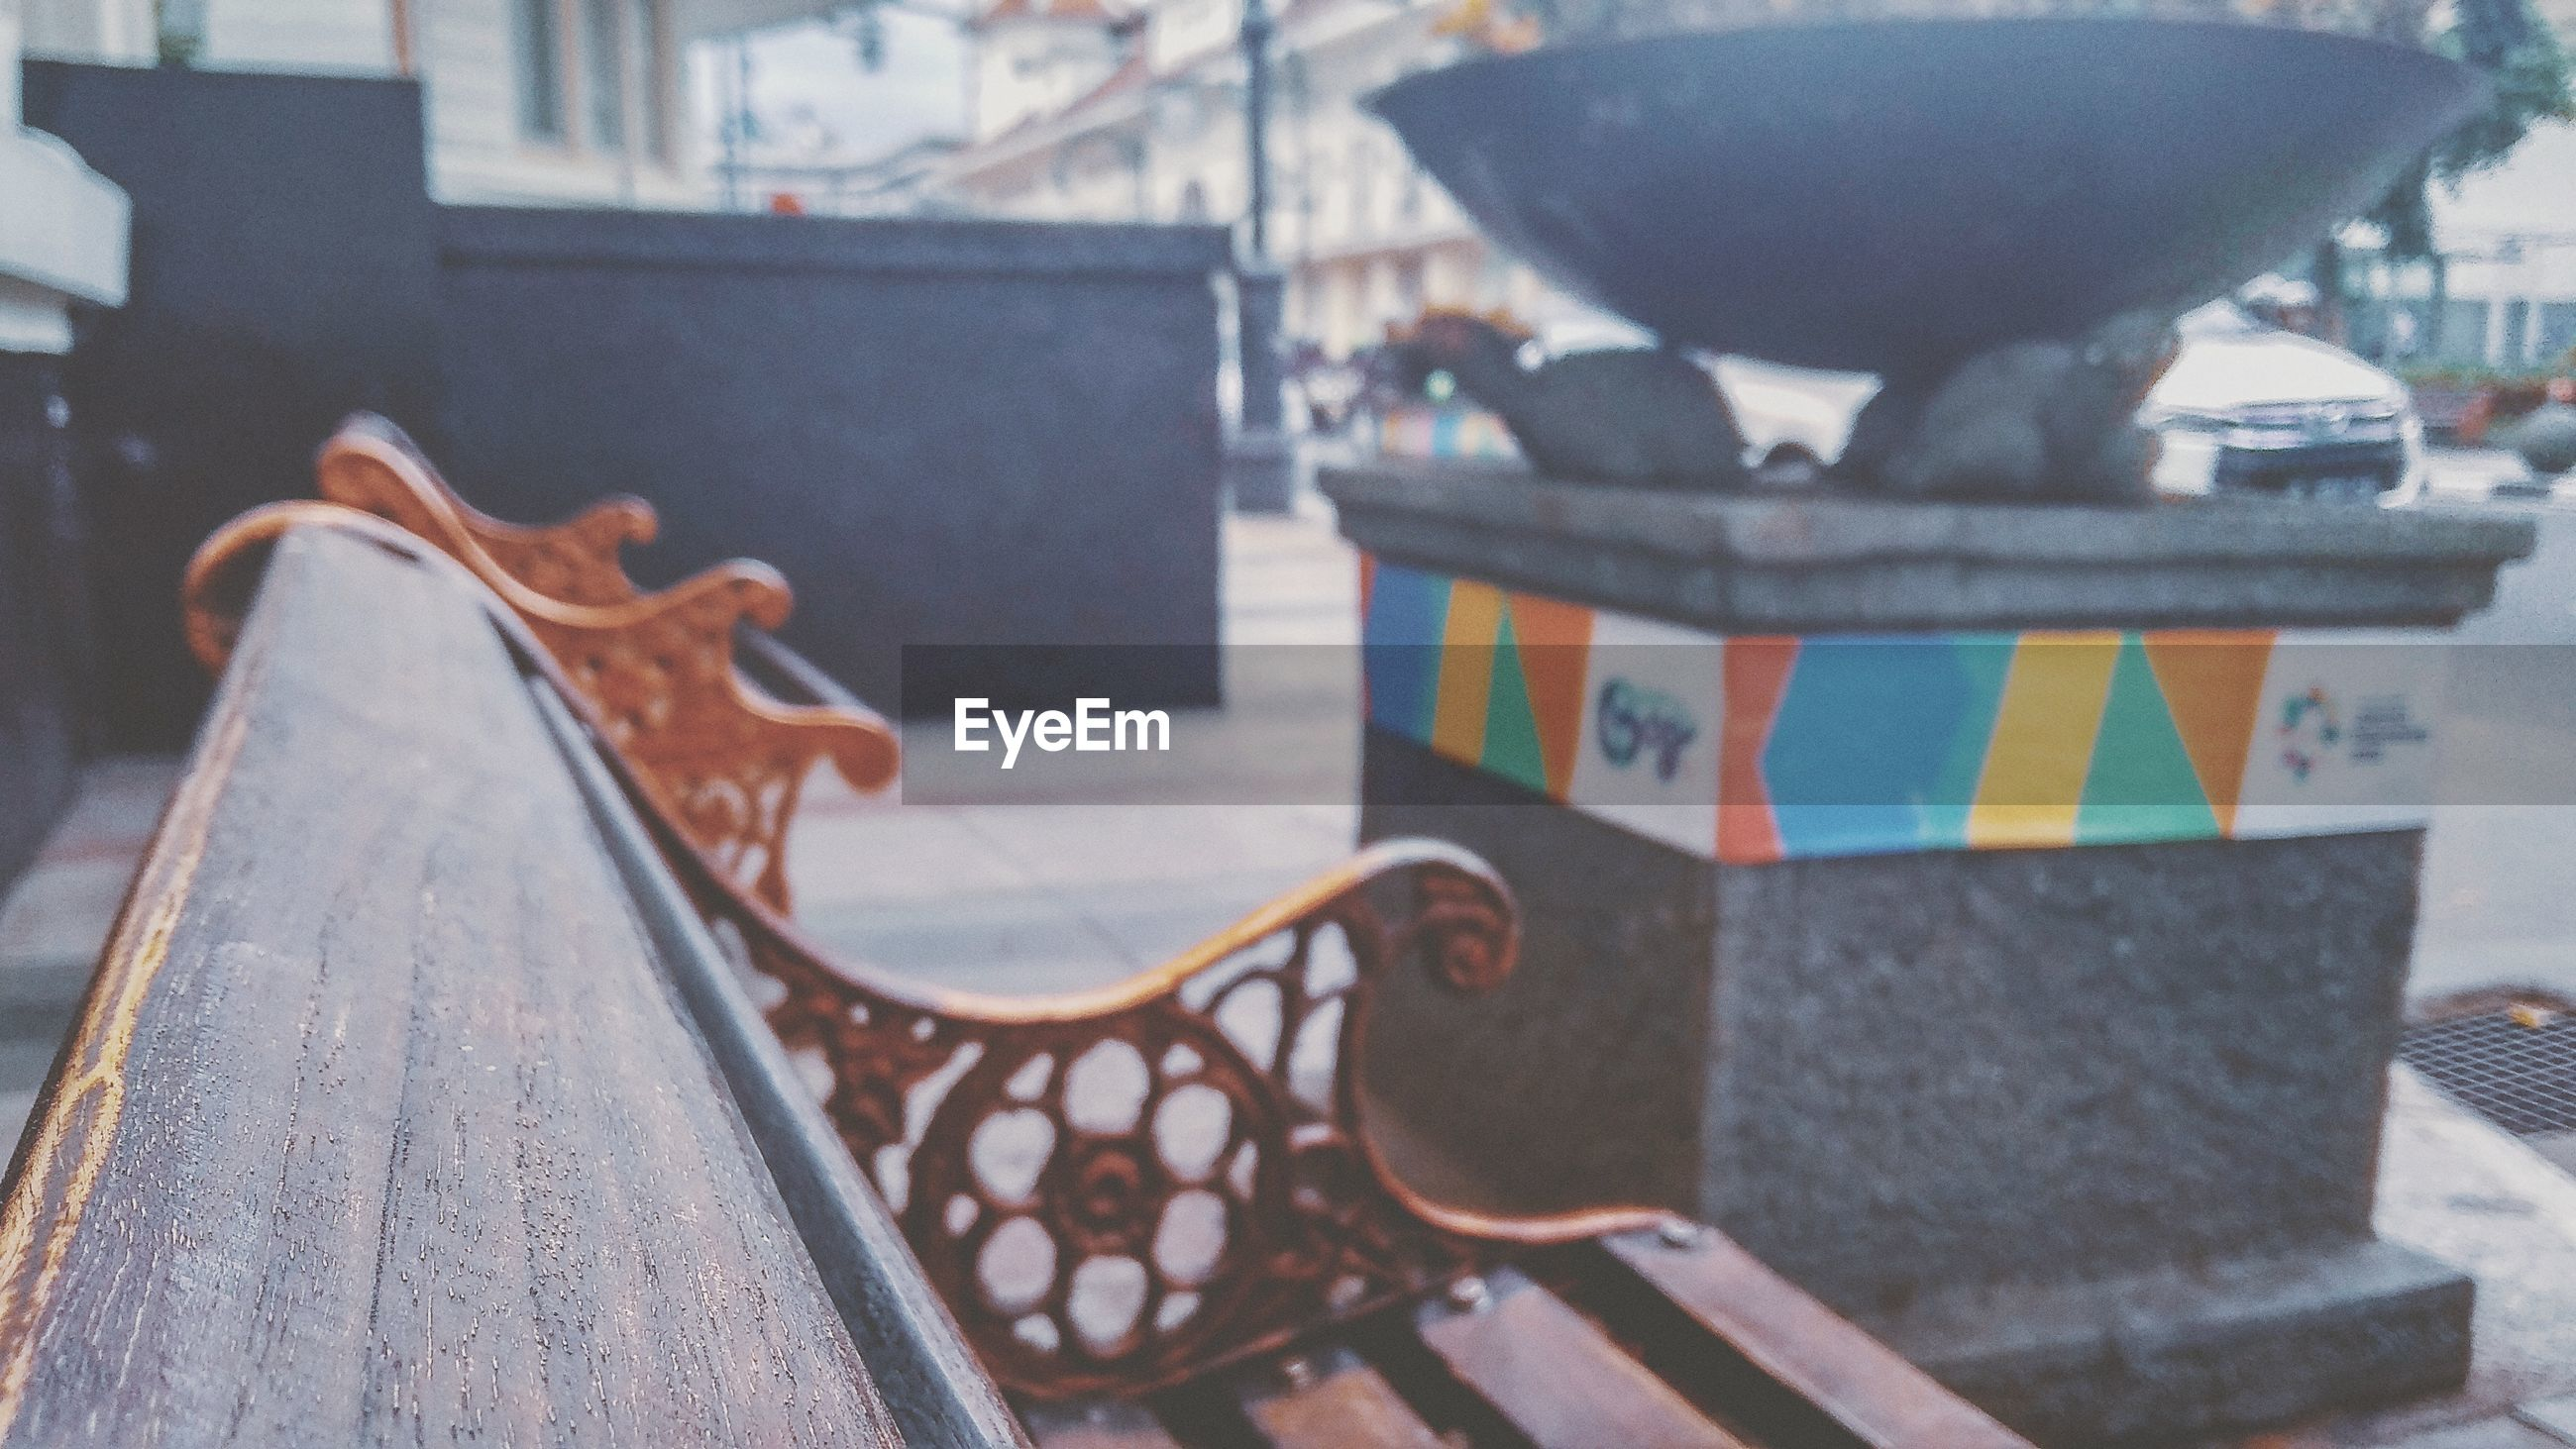 CLOSE-UP OF EMPTY BENCH ON TABLE AGAINST CITY